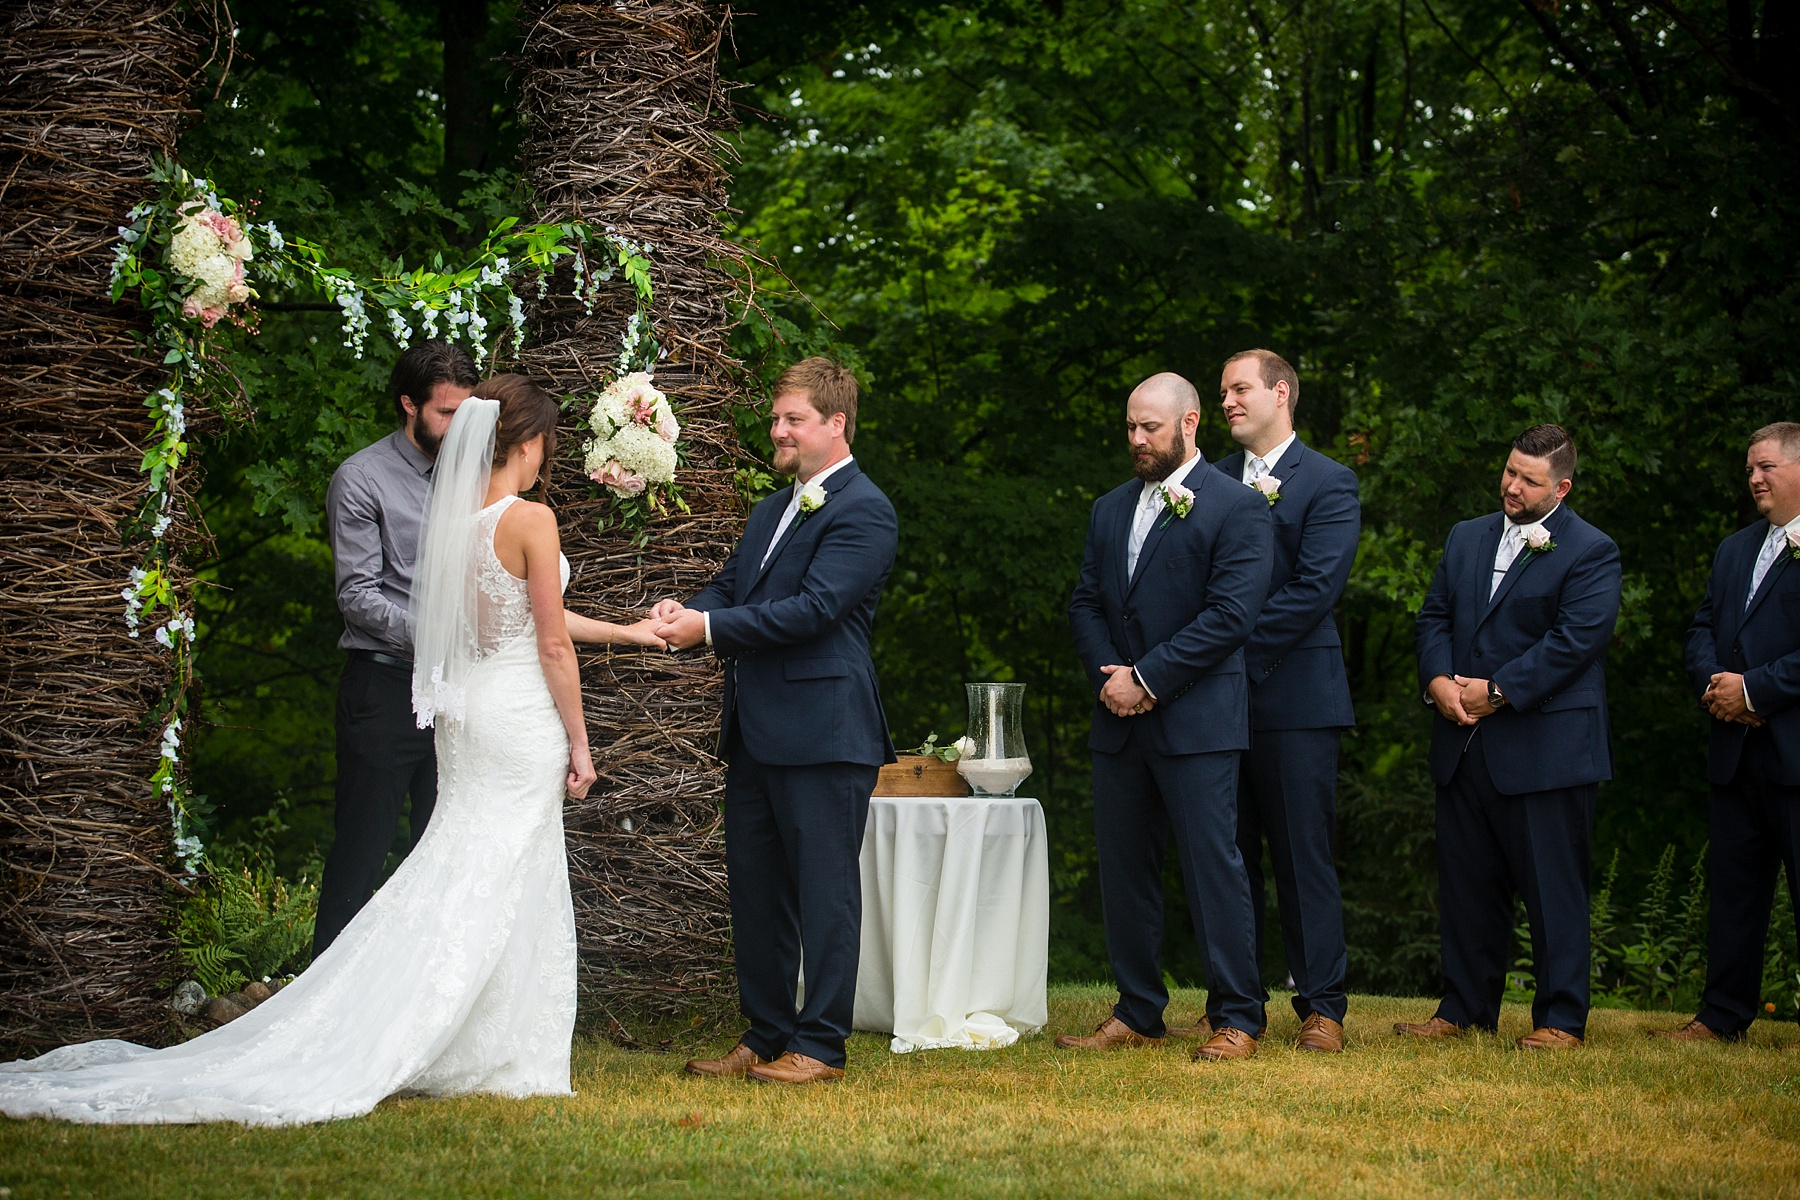 Brandon_Shafer_Photography_Elizabeth_Scott_Traverse_City_Wedding_0034.jpg